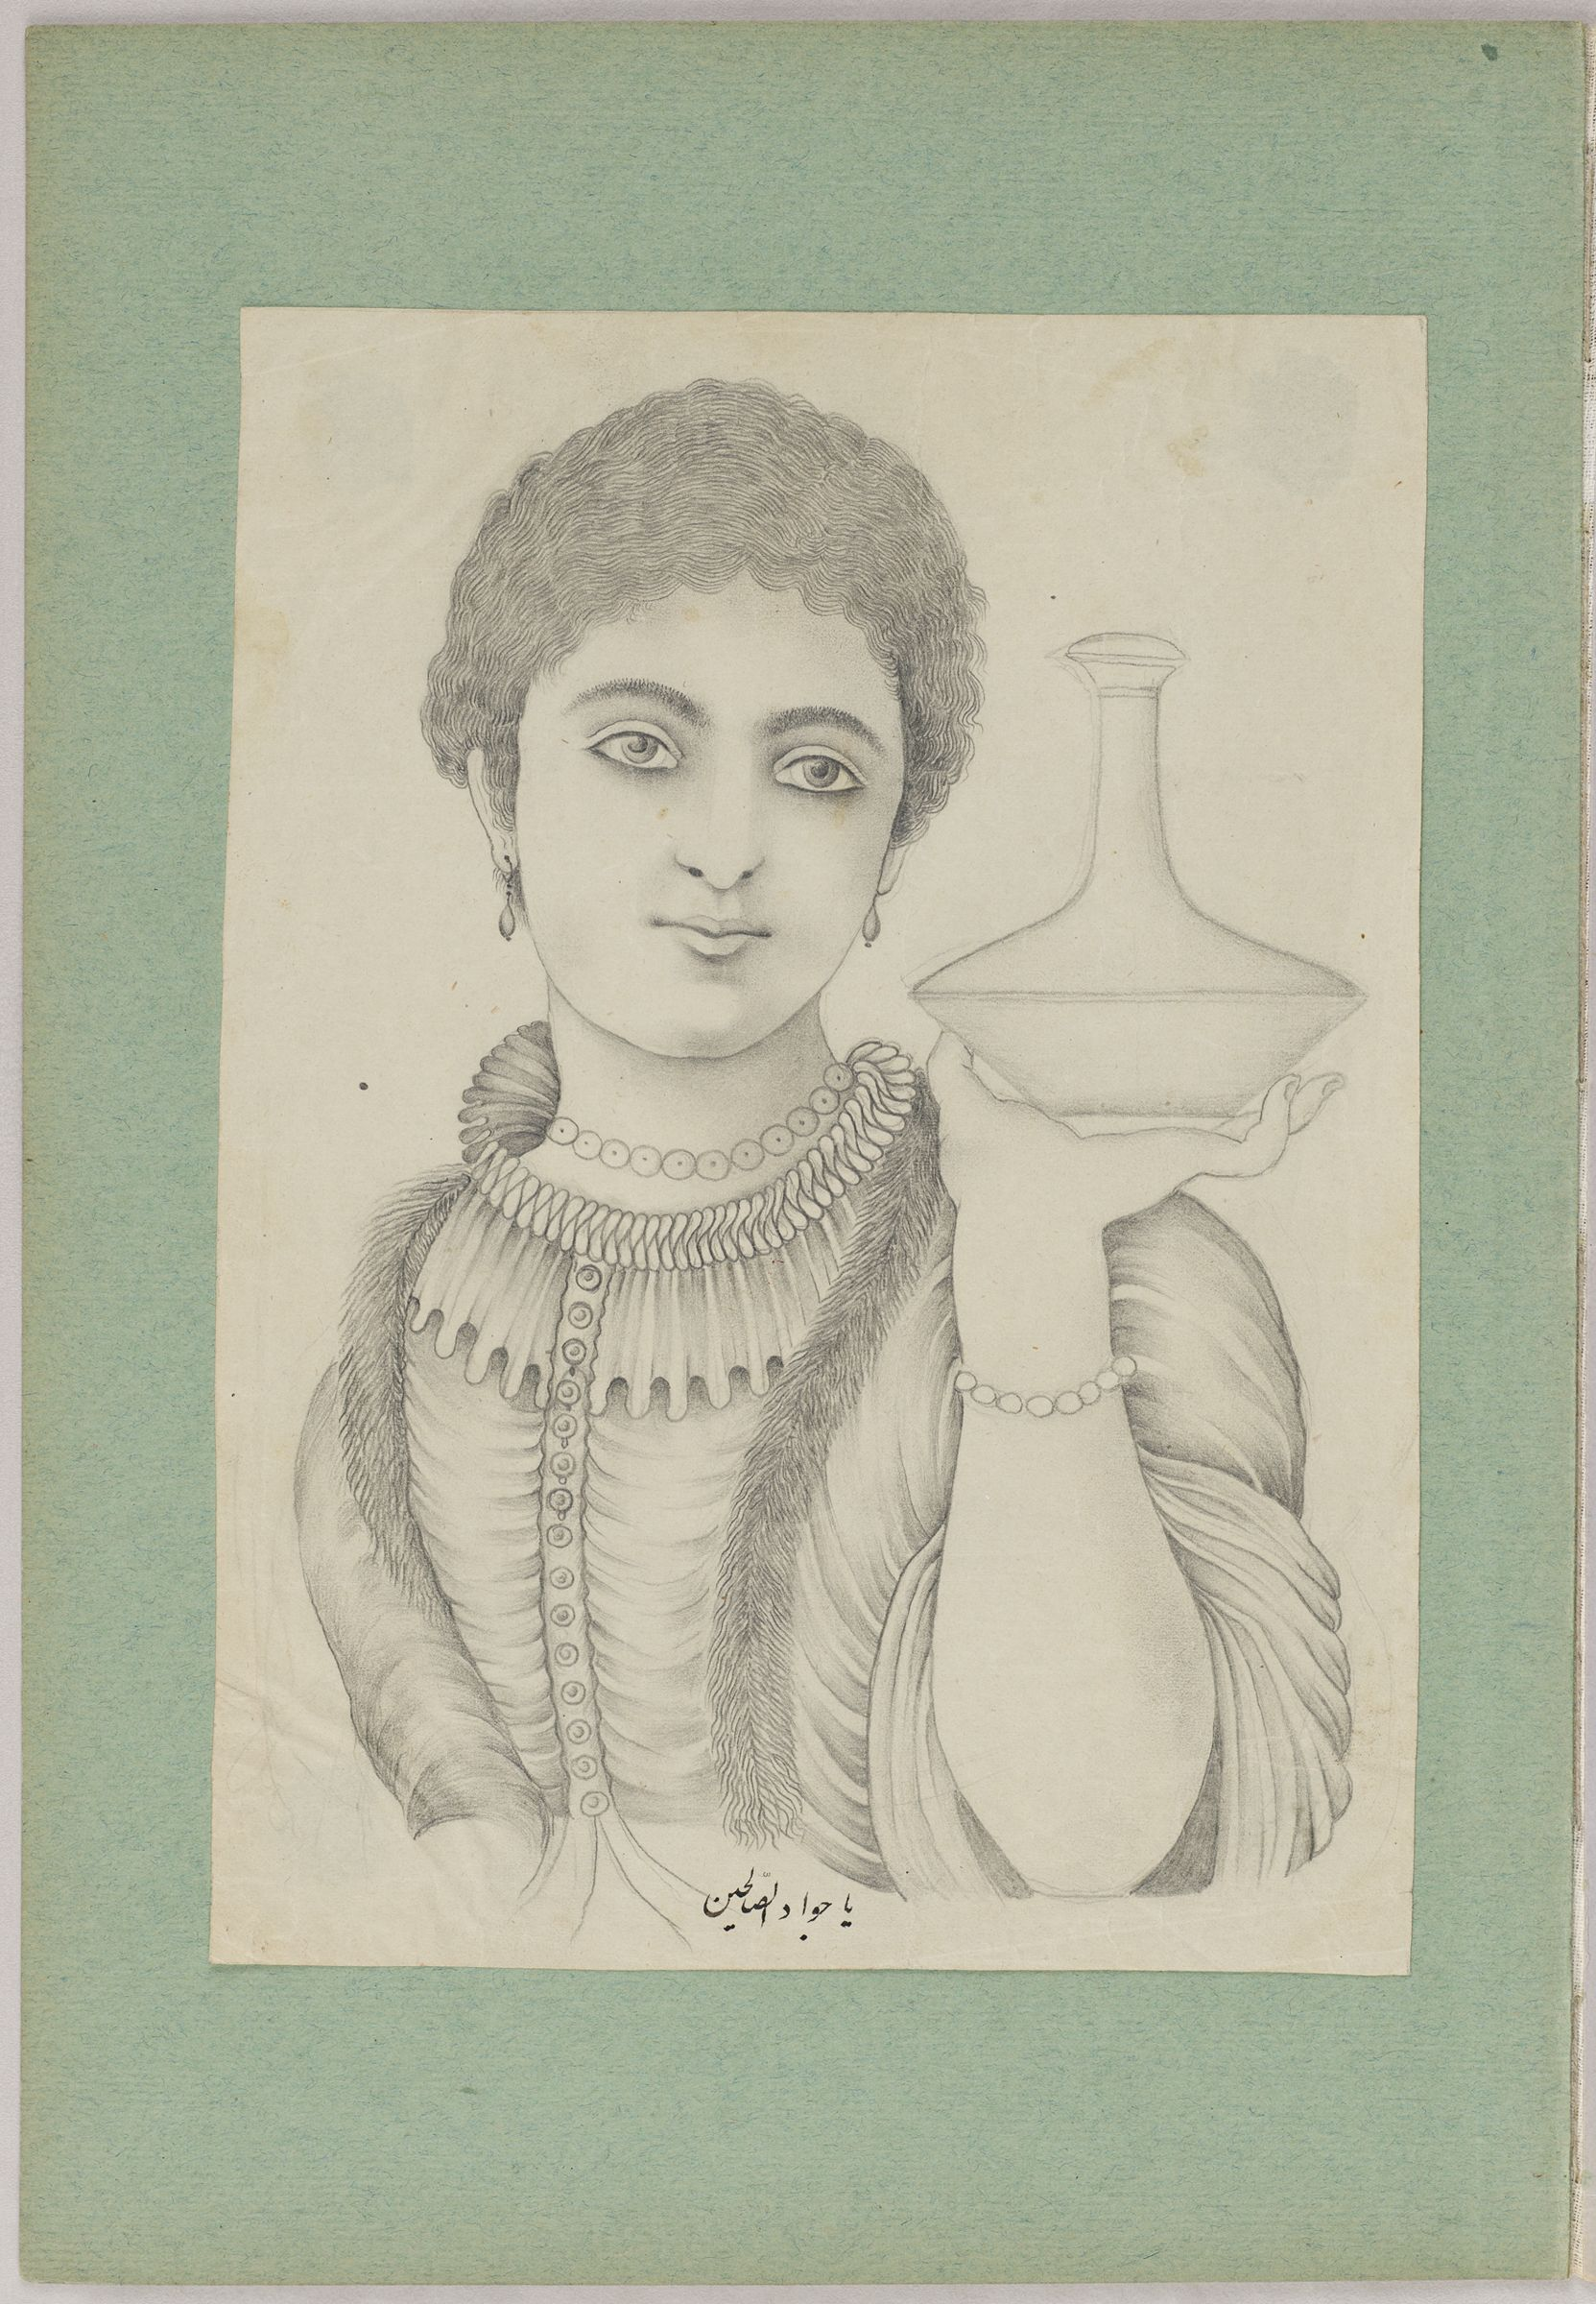 Folio 33 From An Album Of Drawings And Paintings: Portrait Of A Woman (Recto); Two Drawings Of Felines Framed By Colored Paper Borders (Verso)